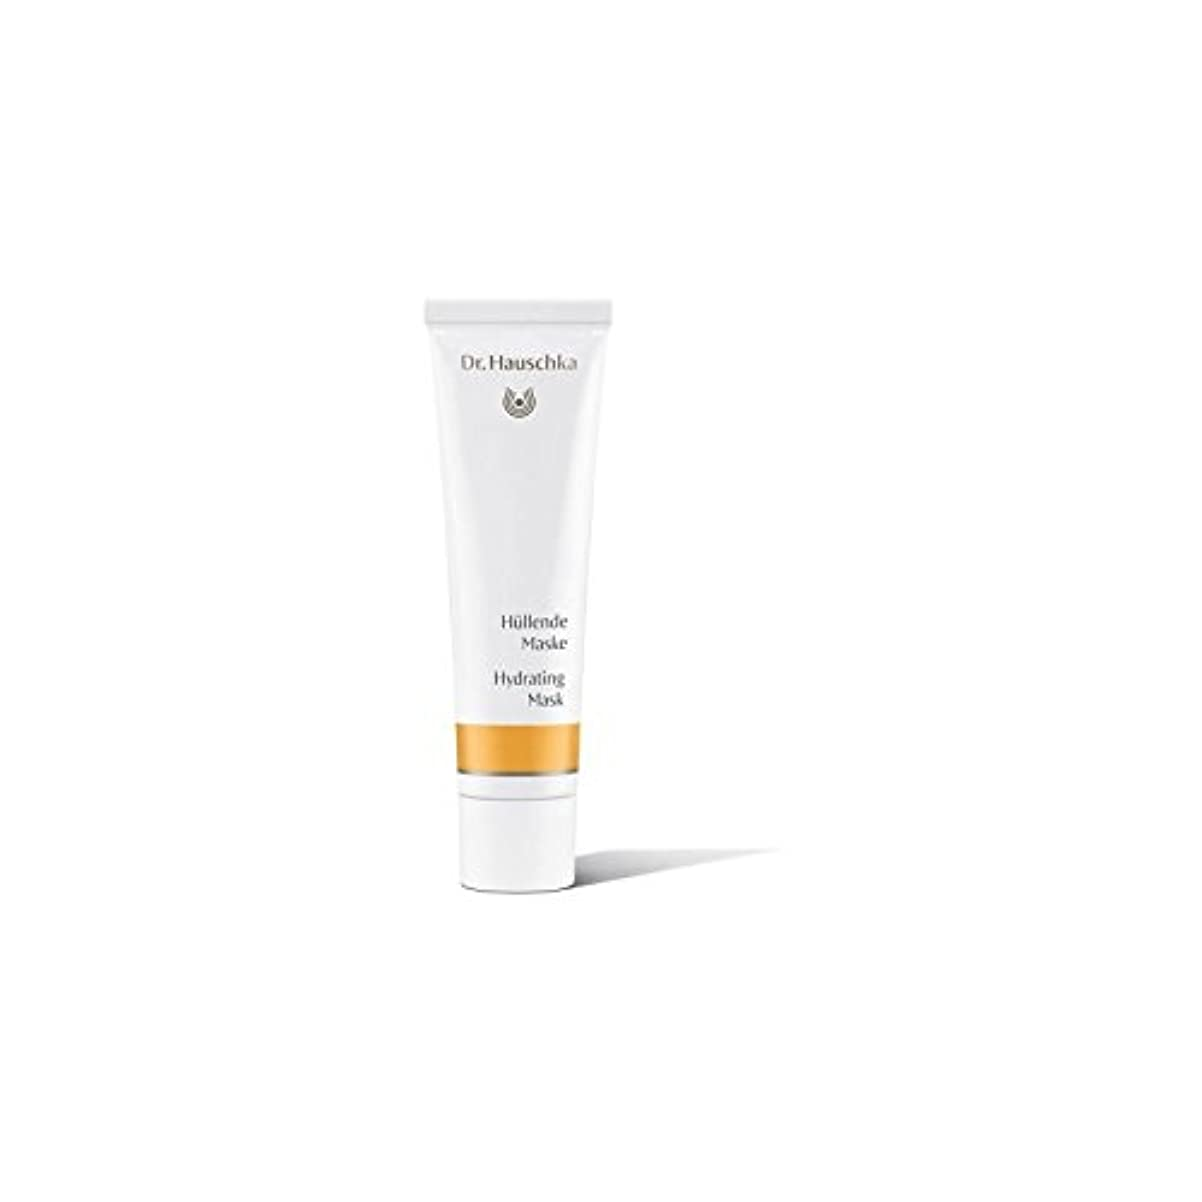 Dr. Hauschka Hydrating Mask 30ml (Pack of 6) - マスク30ミリリットルを水和ハウシュカ x6 [並行輸入品]